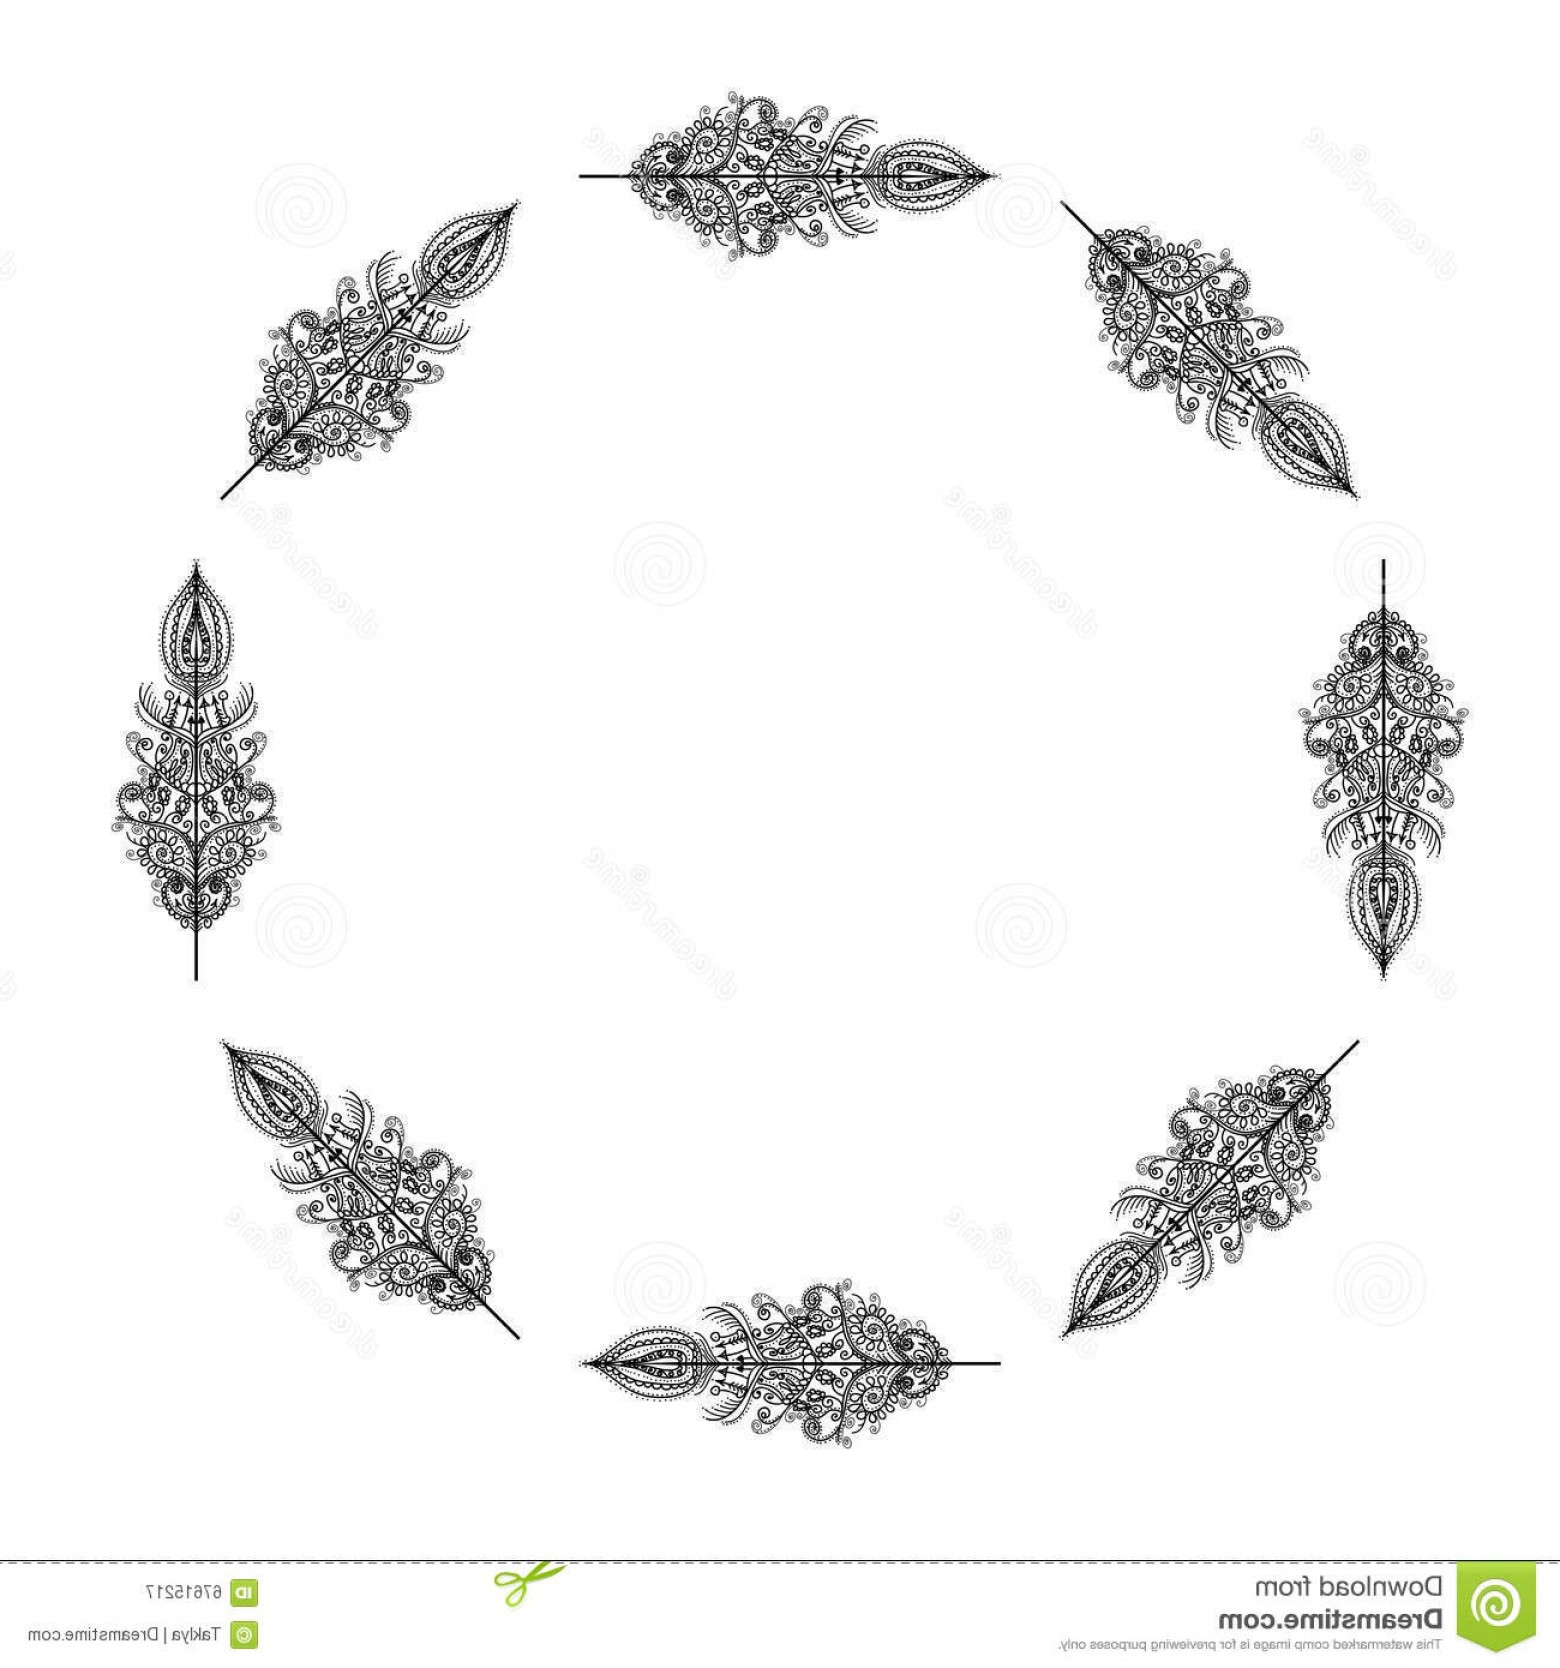 Tattoo Templates Vector Frames: Stock Illustration Vector Decorative Frame Feathers Tribal Design Tattoo Template Image